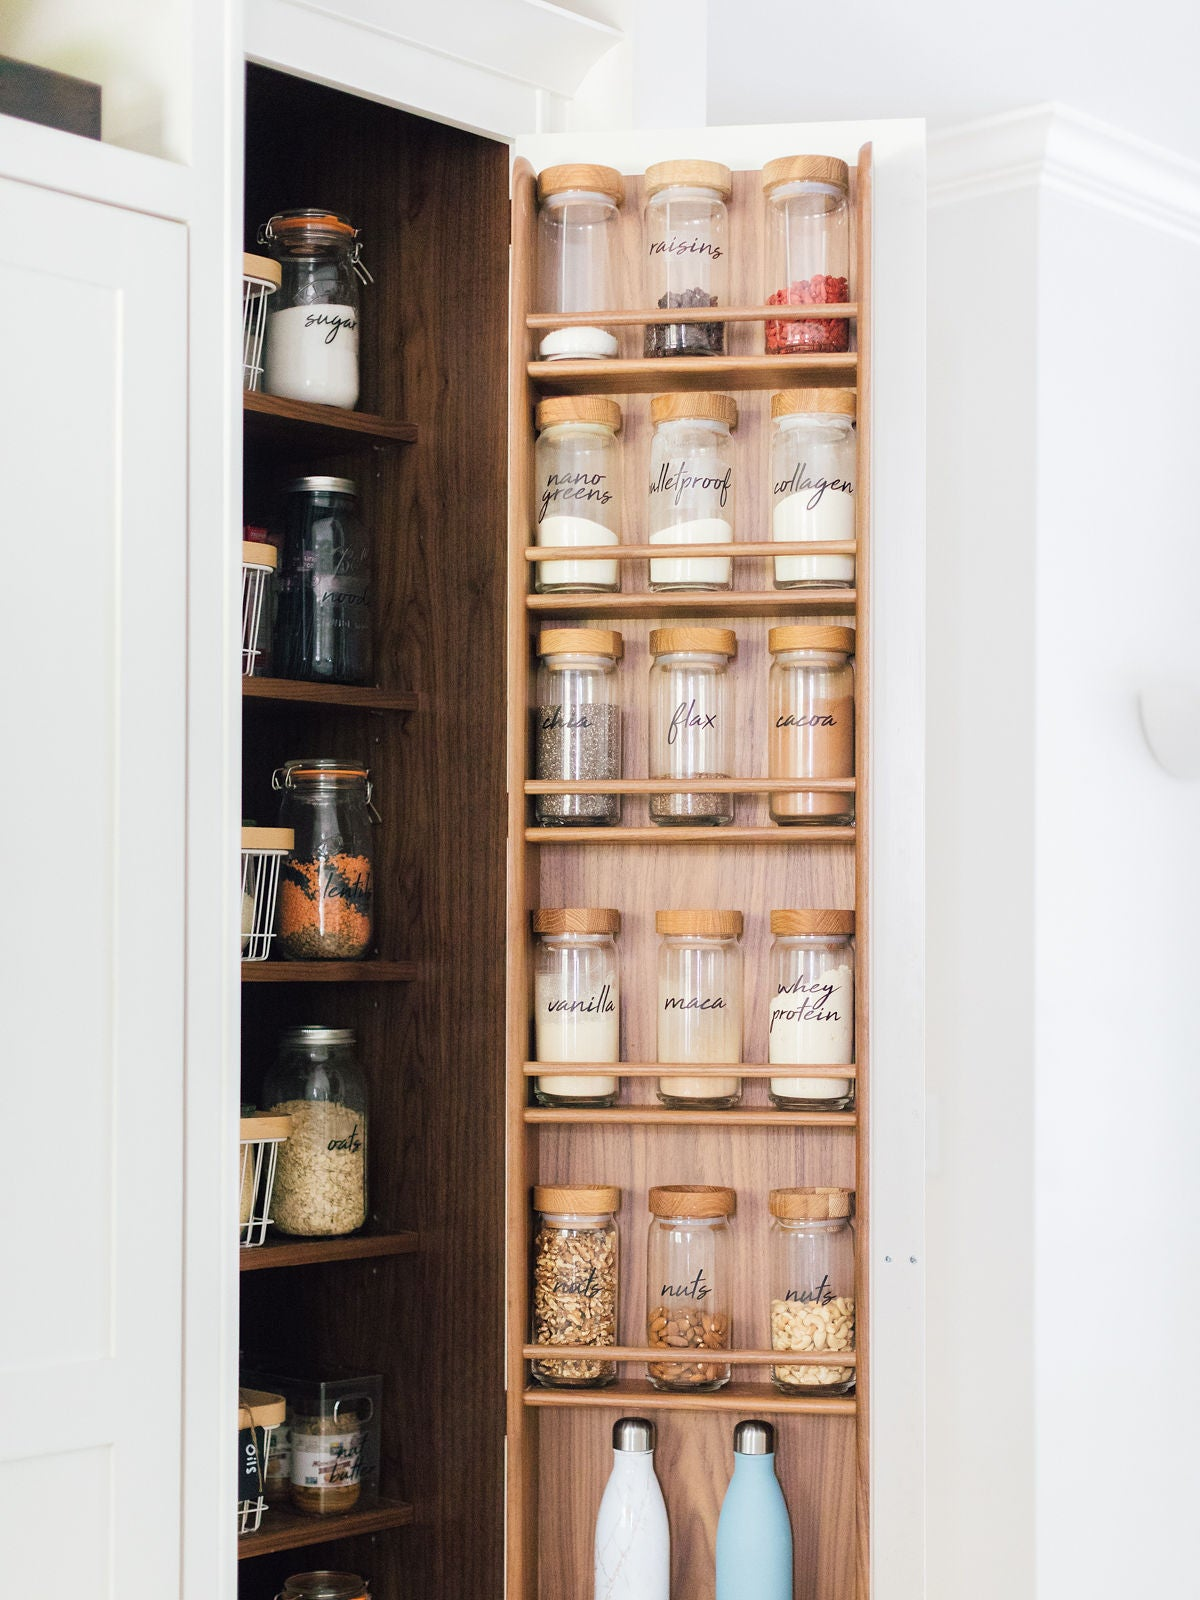 mounted door rack with pantry items